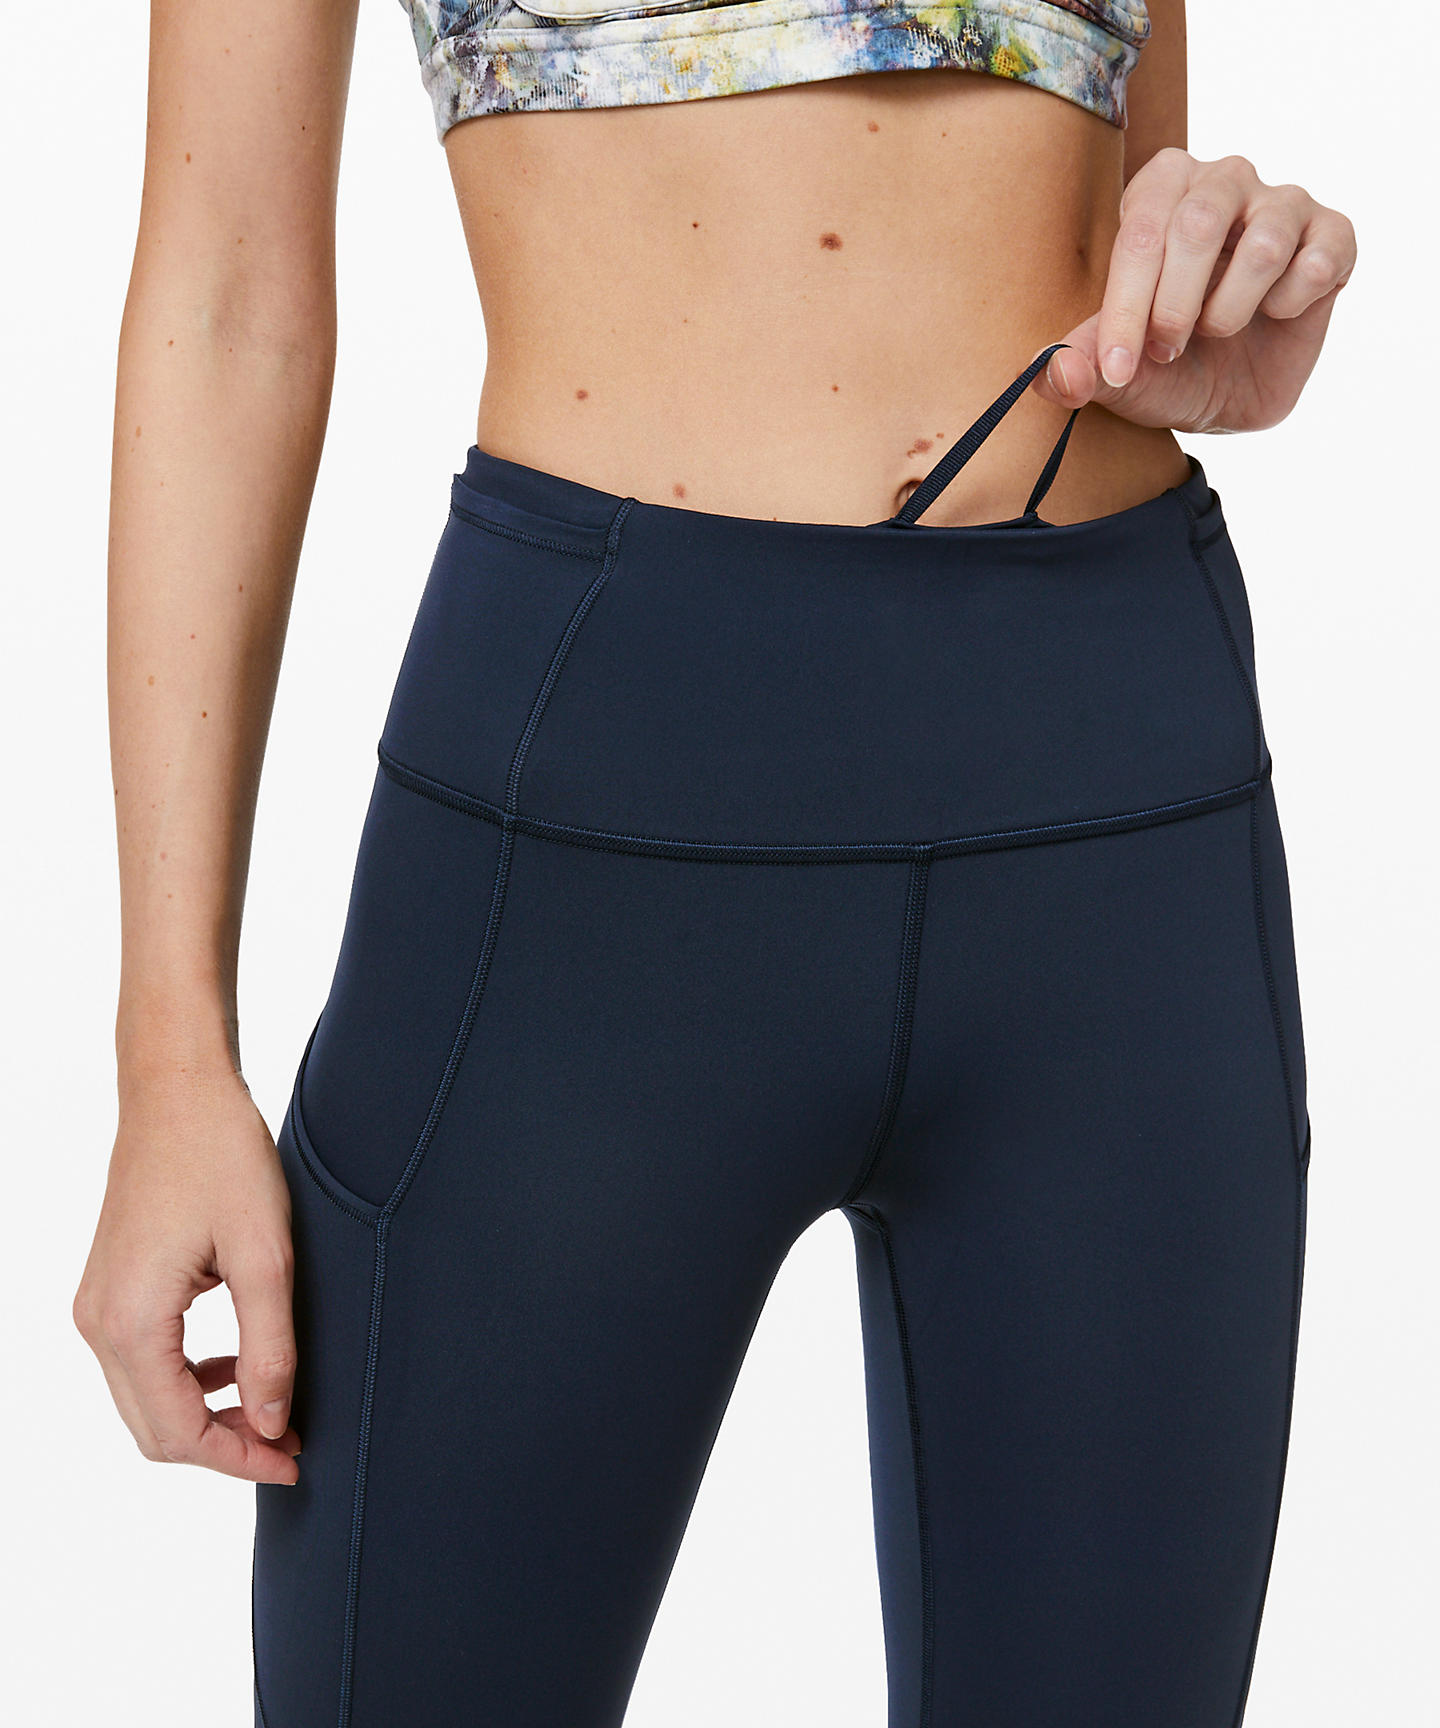 Lululemon fast and free legging review